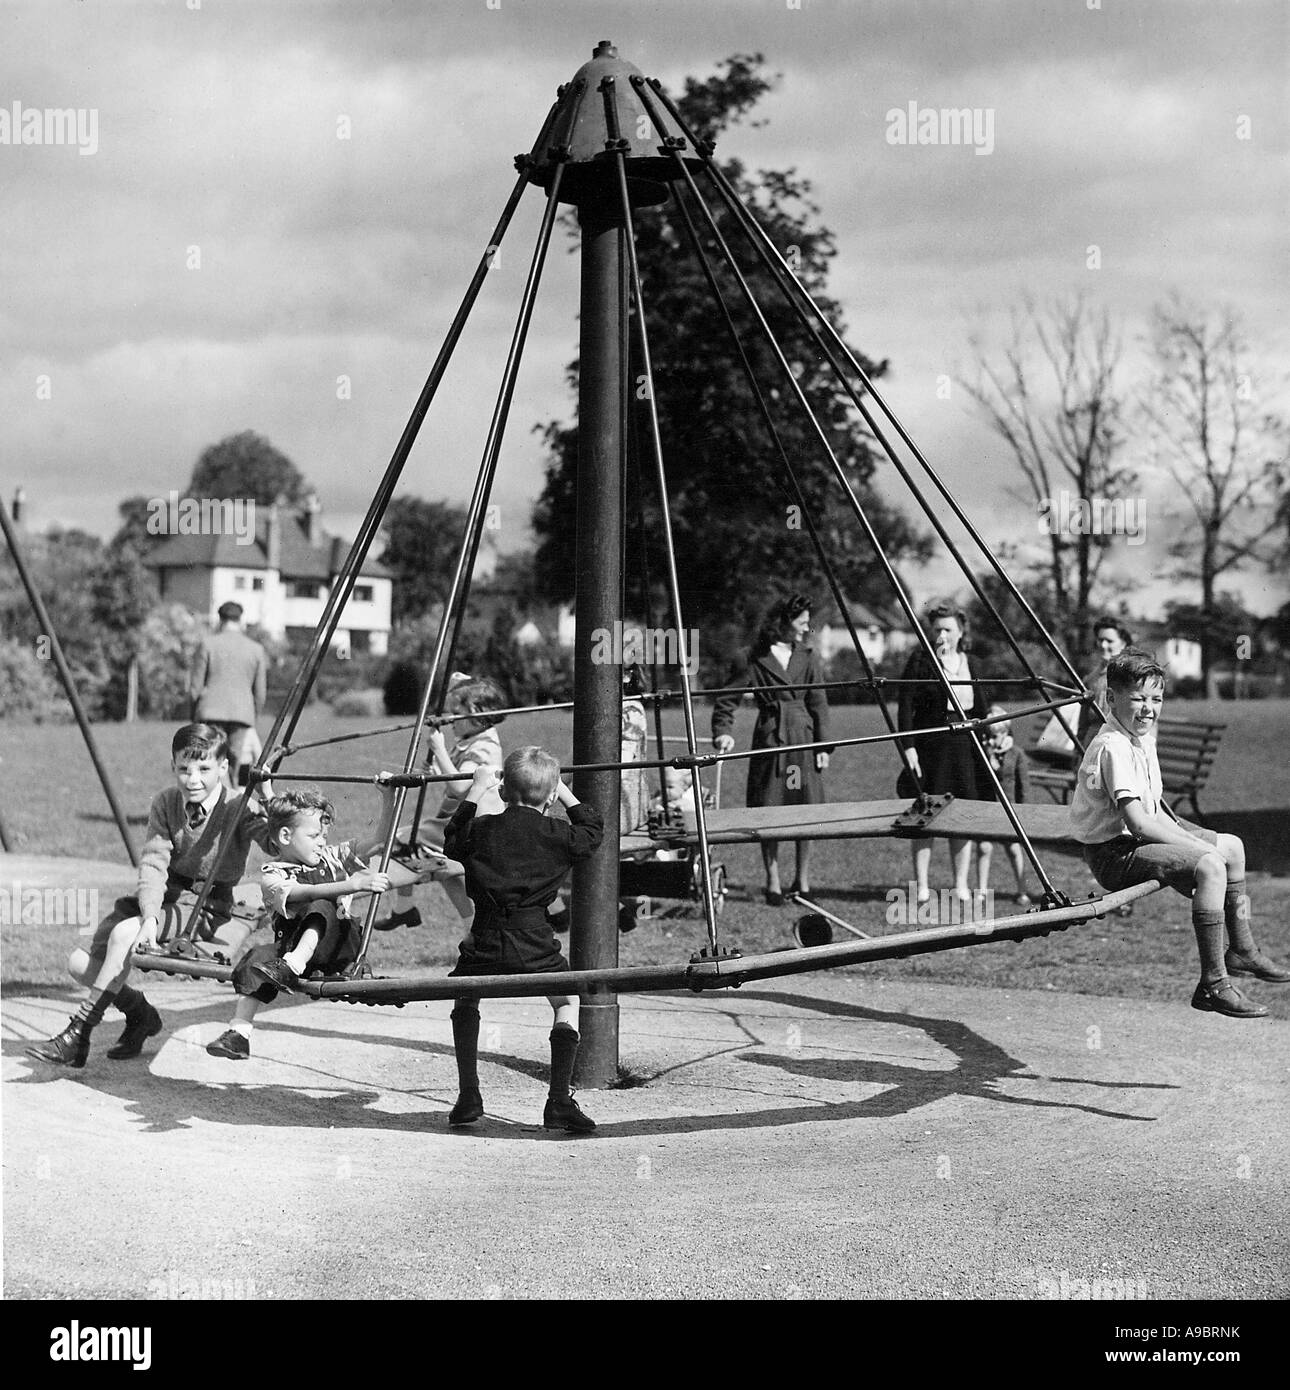 CHILDREN ON A ROUNDABOUT in 1943 - they were evacuated from London during the war - Stock Image